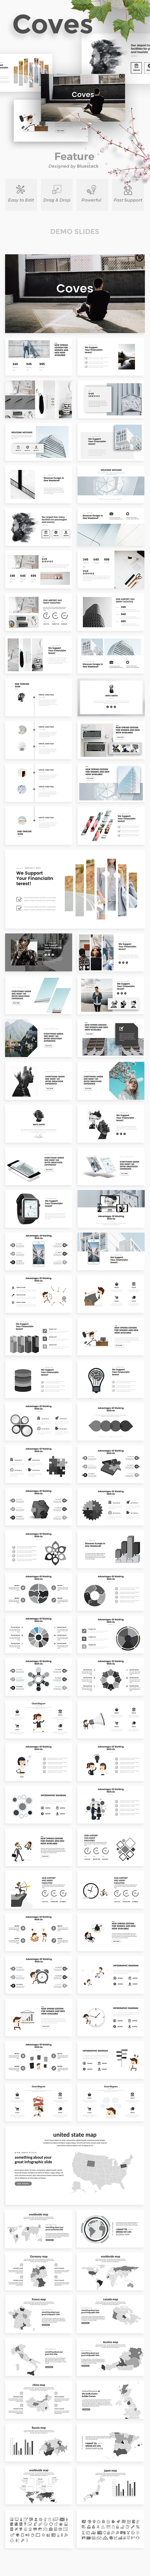 GraphicRiver Coves Creative Google Slide Template 21004864